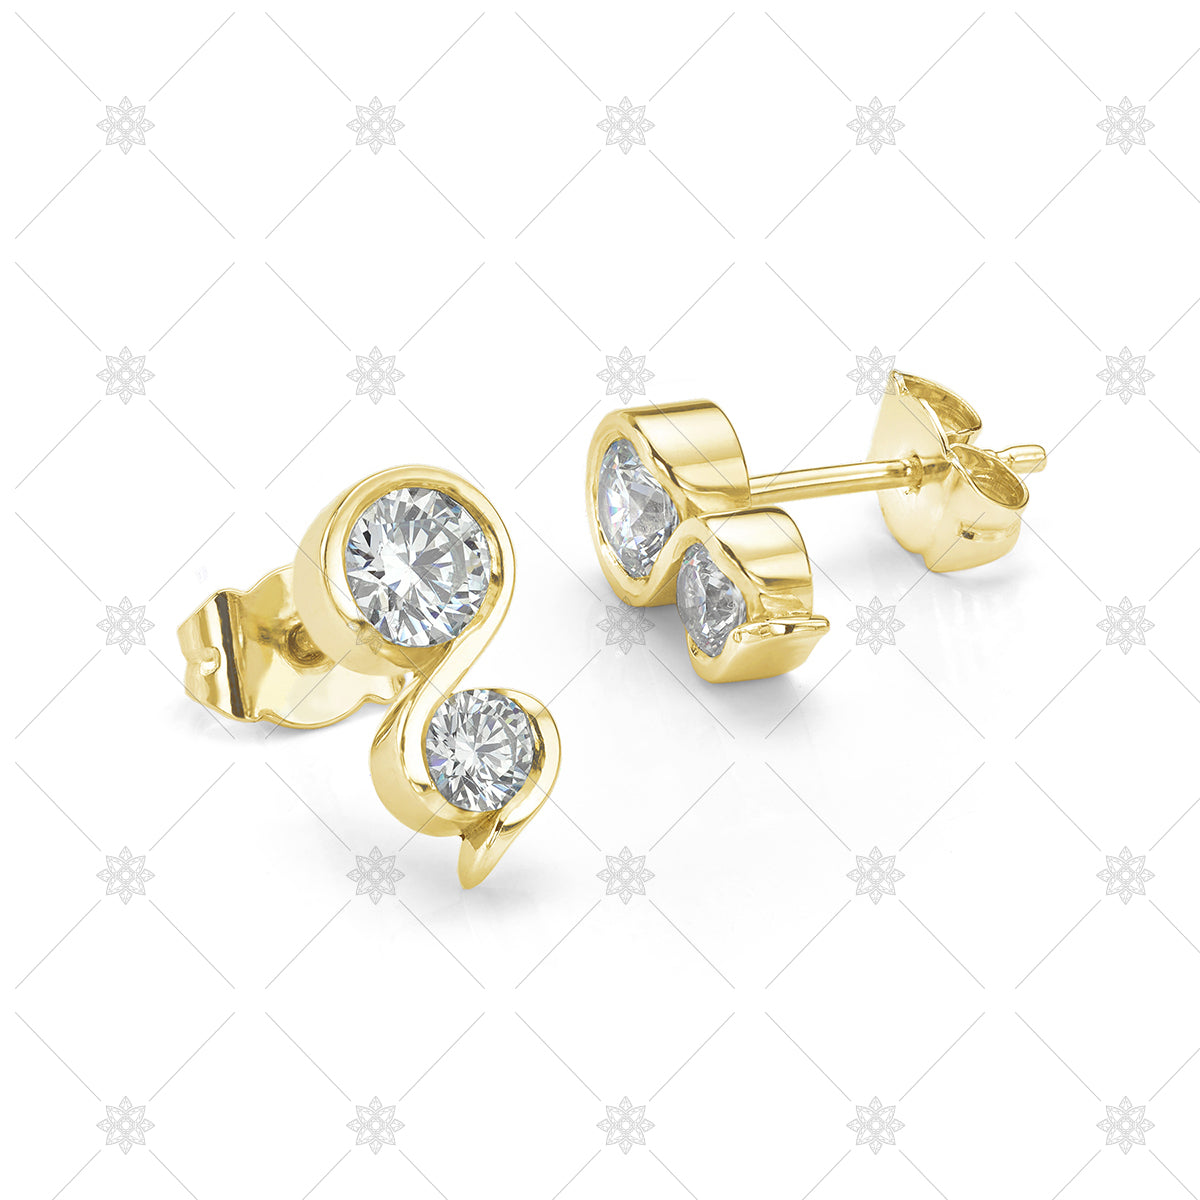 Diamond Earrings yellow gold two stone